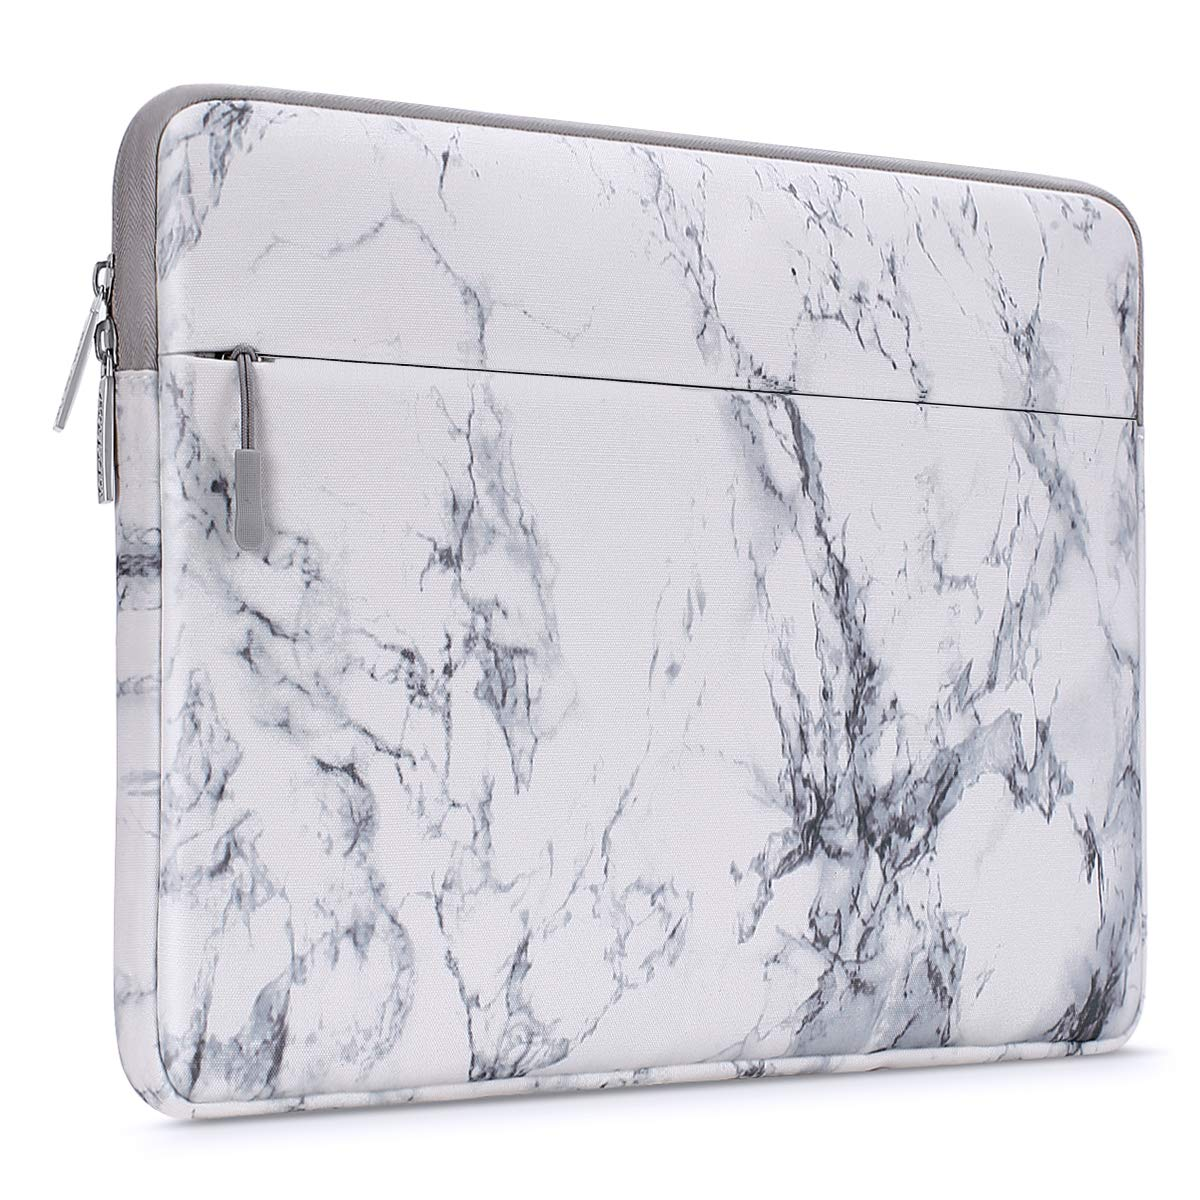 76bea463a262 MOSISO Laptop Sleeve Bag Compatible 15-15.6 Inch MacBook Pro, Ultrabook  Notebook Computer, Canvas Marble Pattern Protective Tablet Carrying Case ...